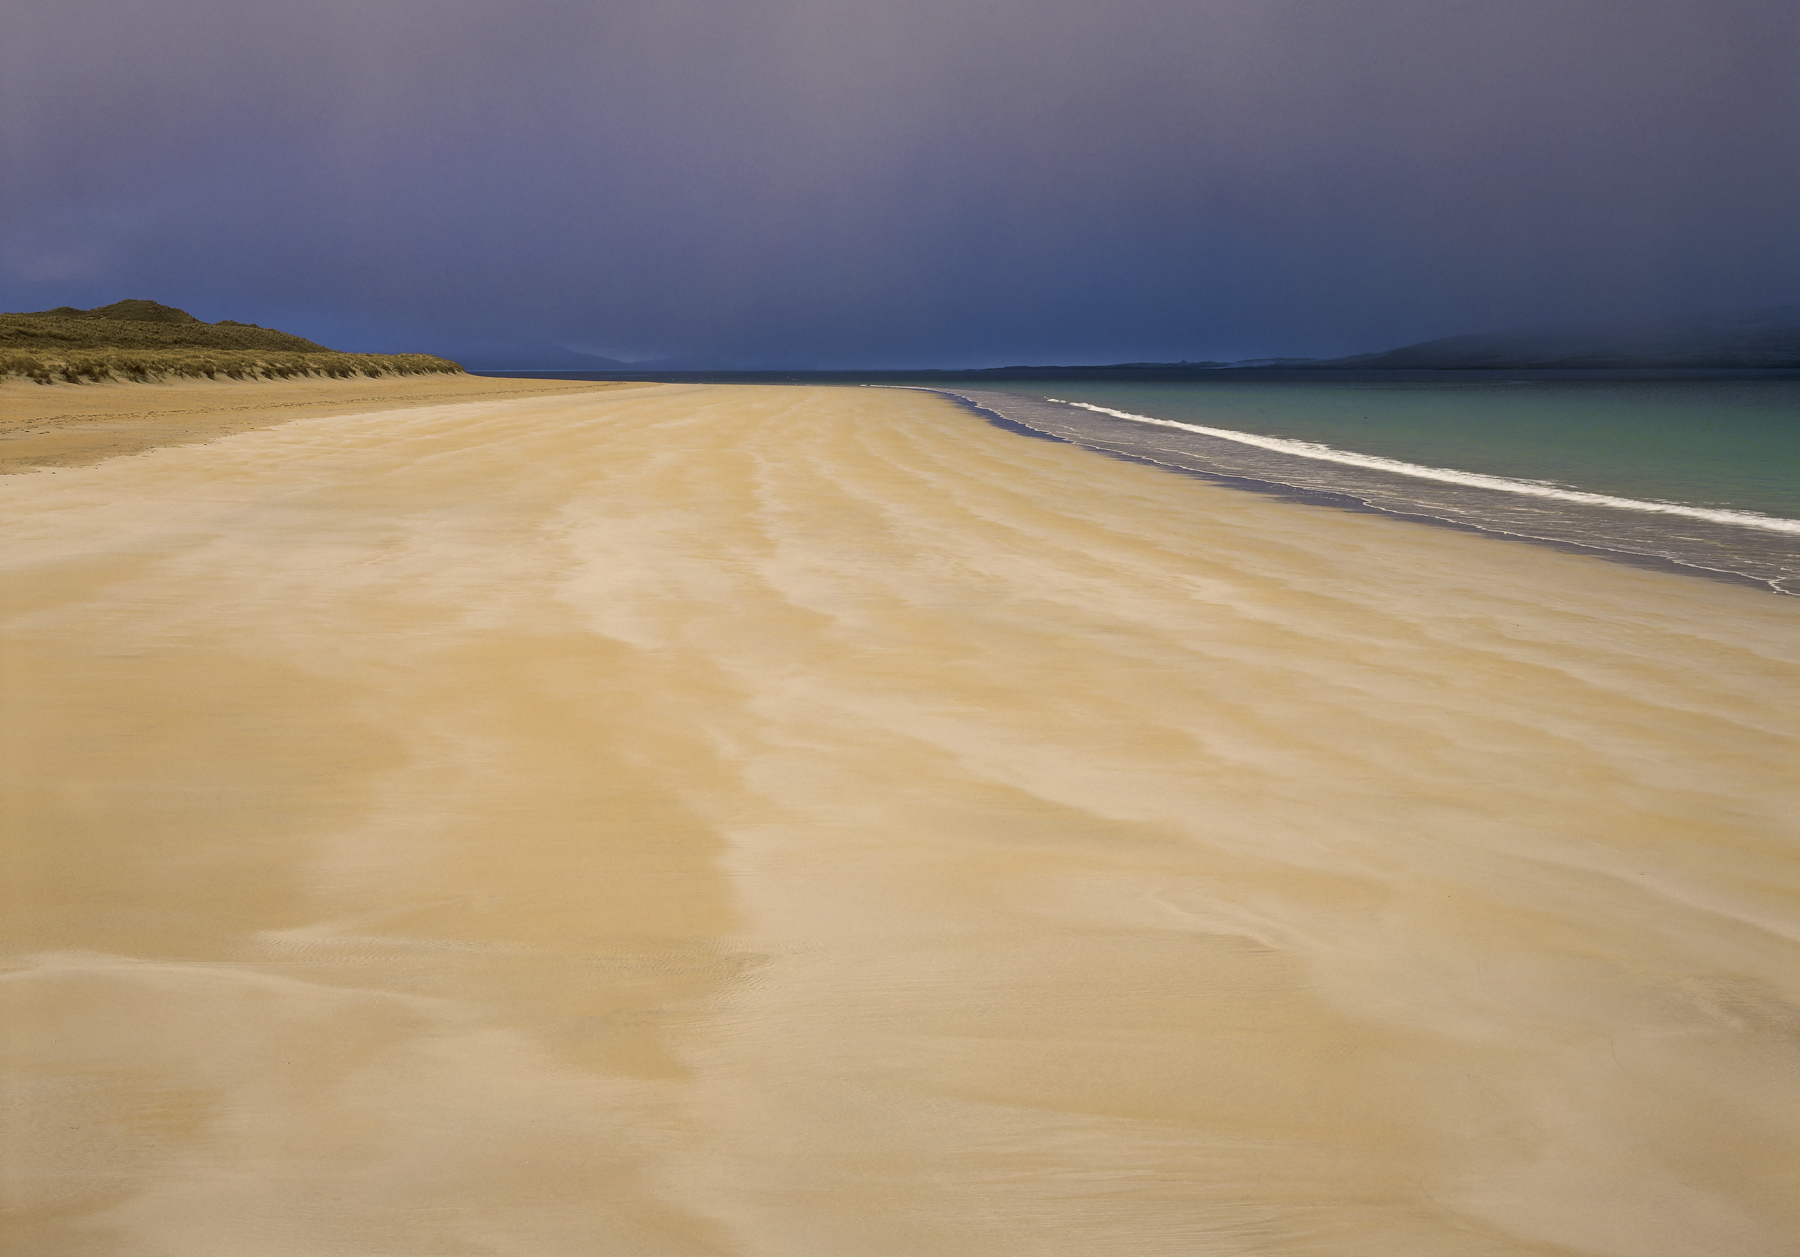 What is a perfect beach. Well I know what it conjures up in my mind, empty, deserted, unblemished, untrodden, an infinite...